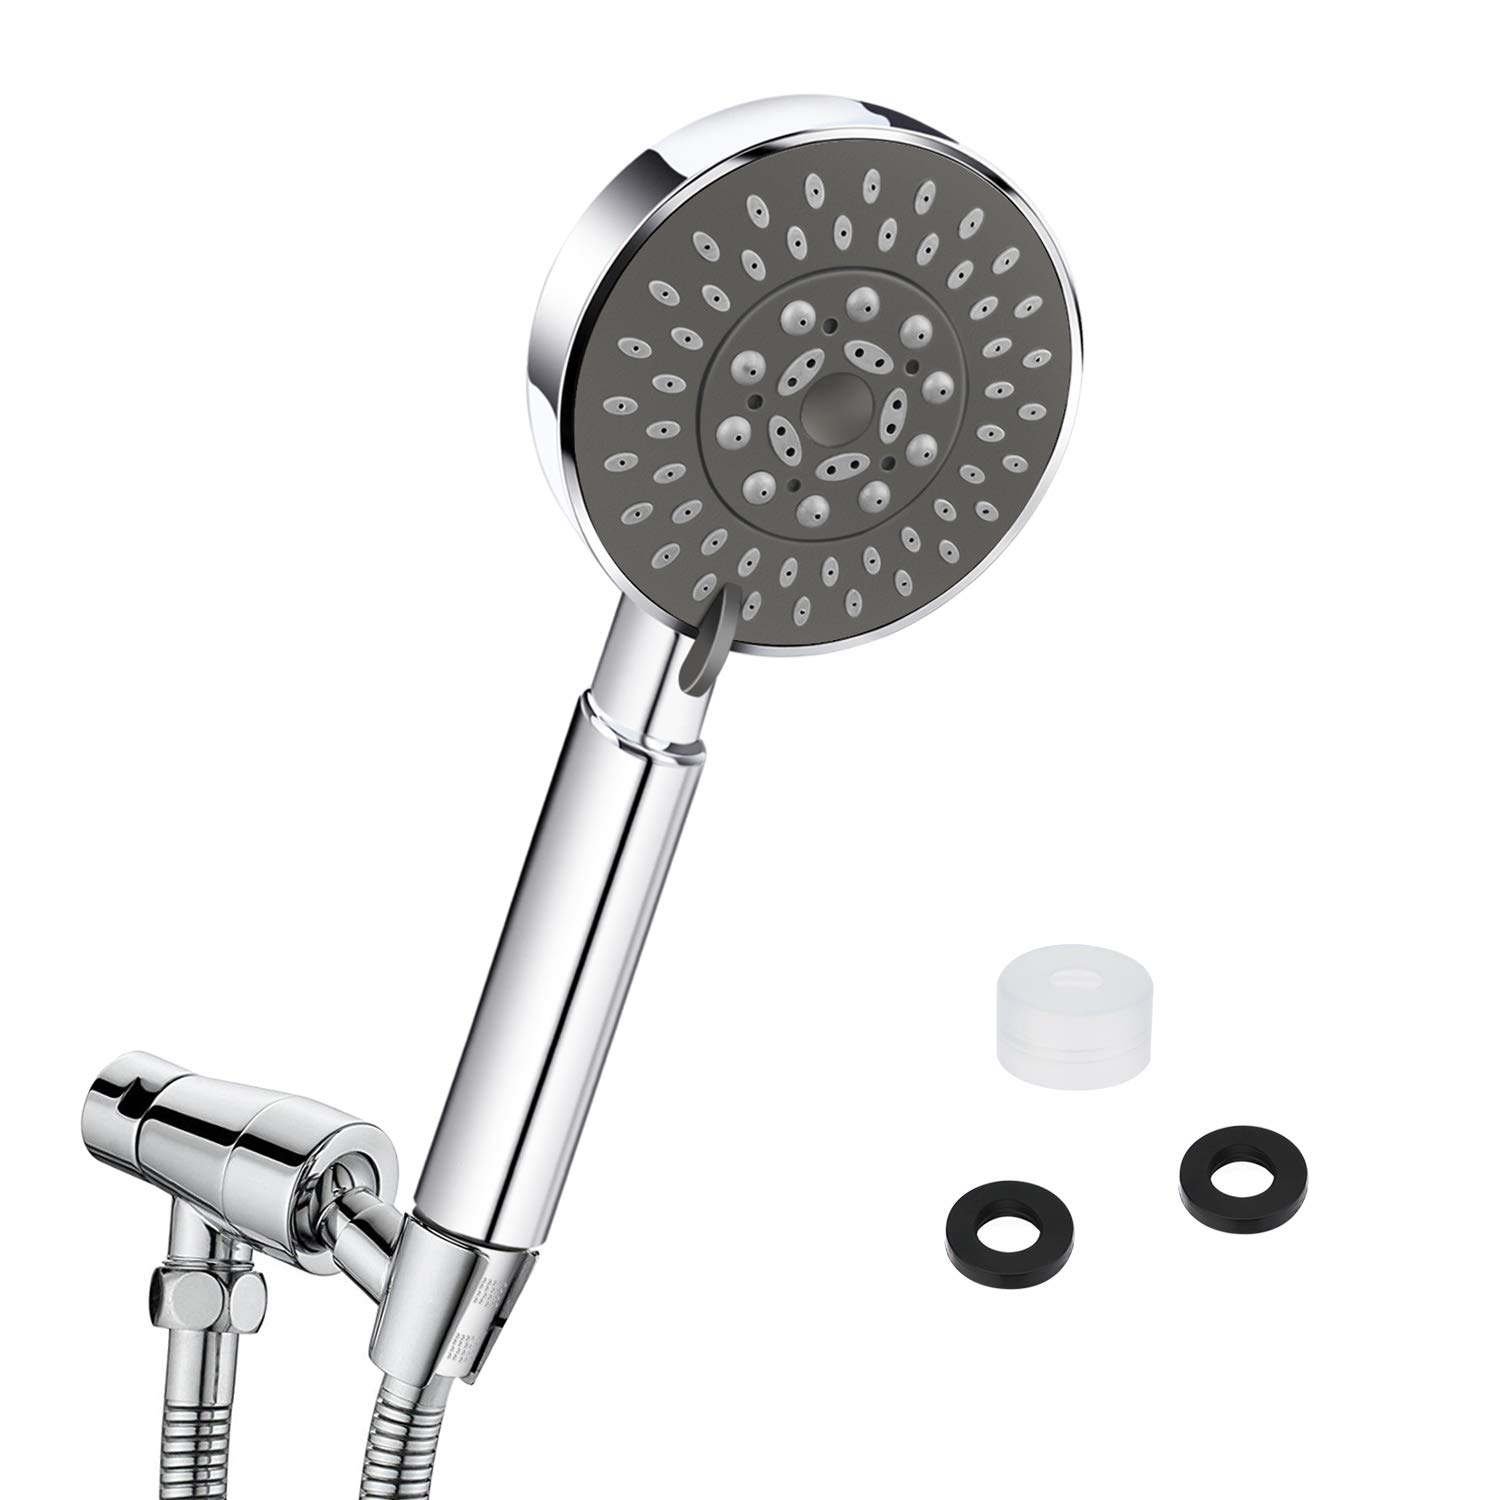 Handheld Shower Head High Pressure, 4 inch Universal Fitting Shower Head with Adjustable 5 Sprays Modes Bath Shower Head Handheld Handset Chrome Luxury Finish with Massage Experience Qhui